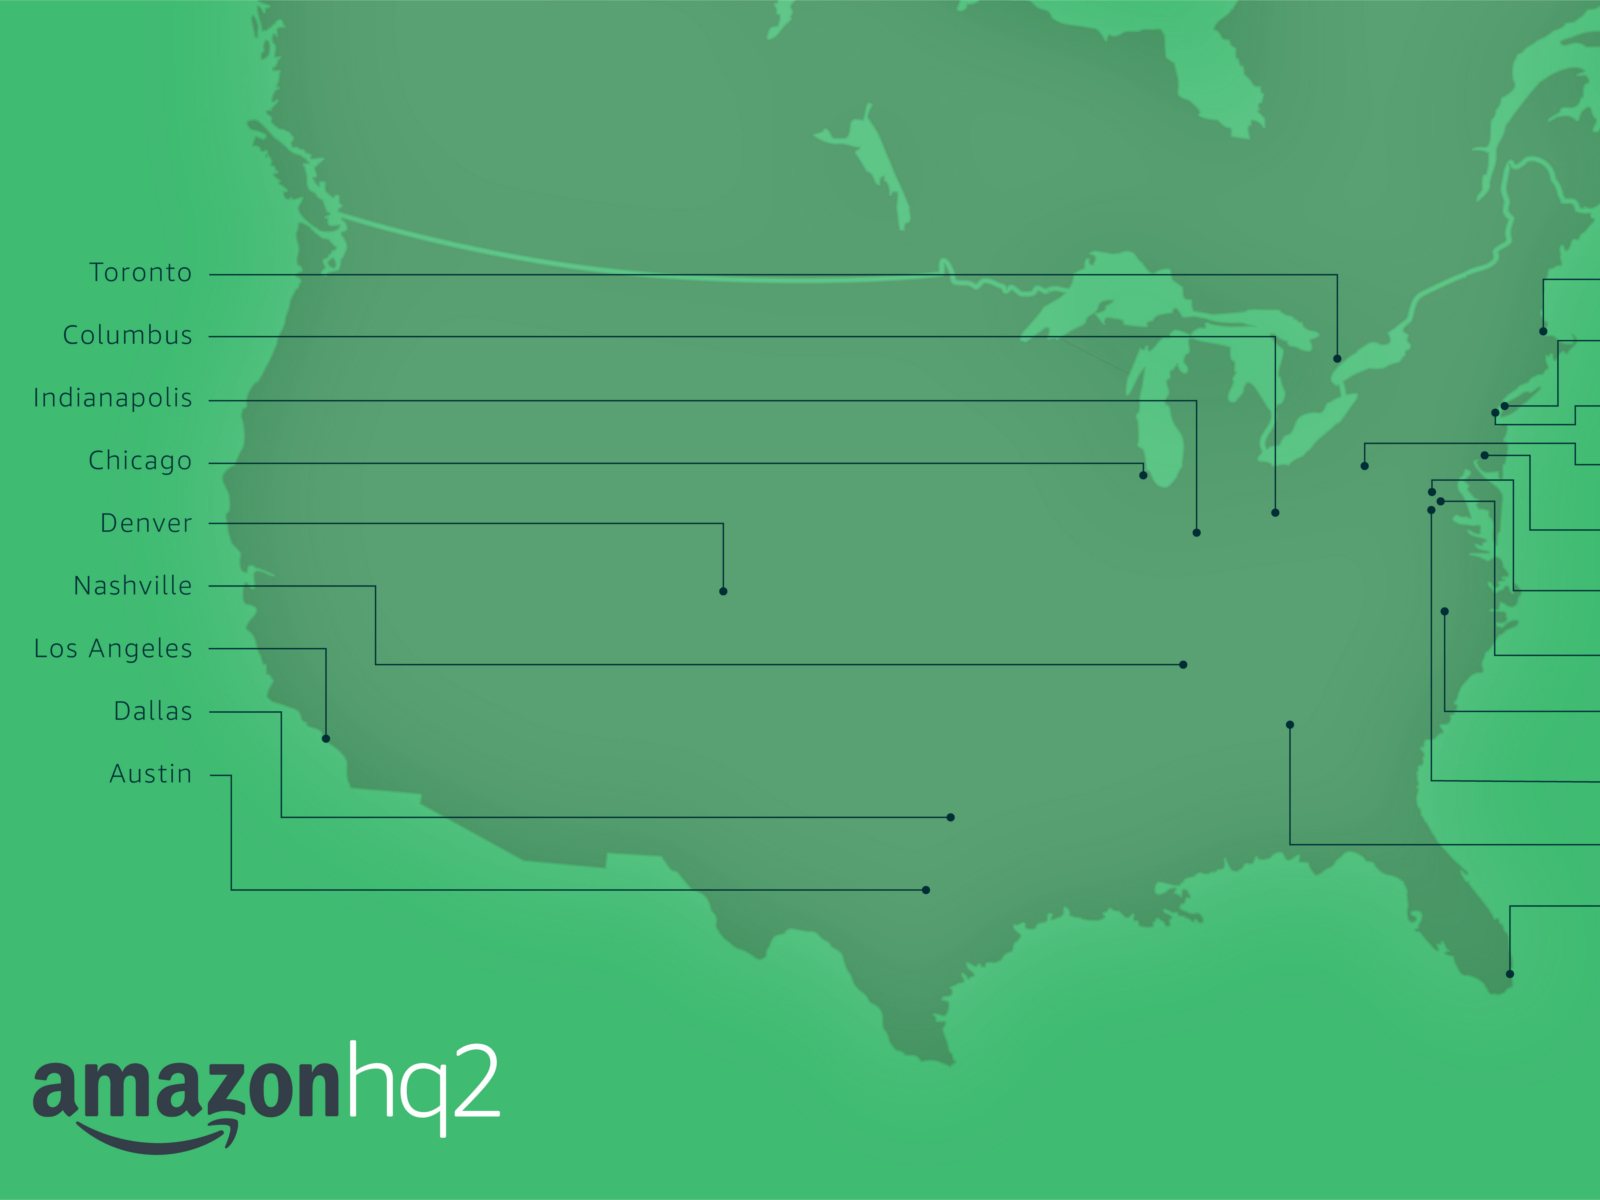 Amazon Com Inc (NASDAQ:AMZN) Shifting Institutional Investors Sentiment